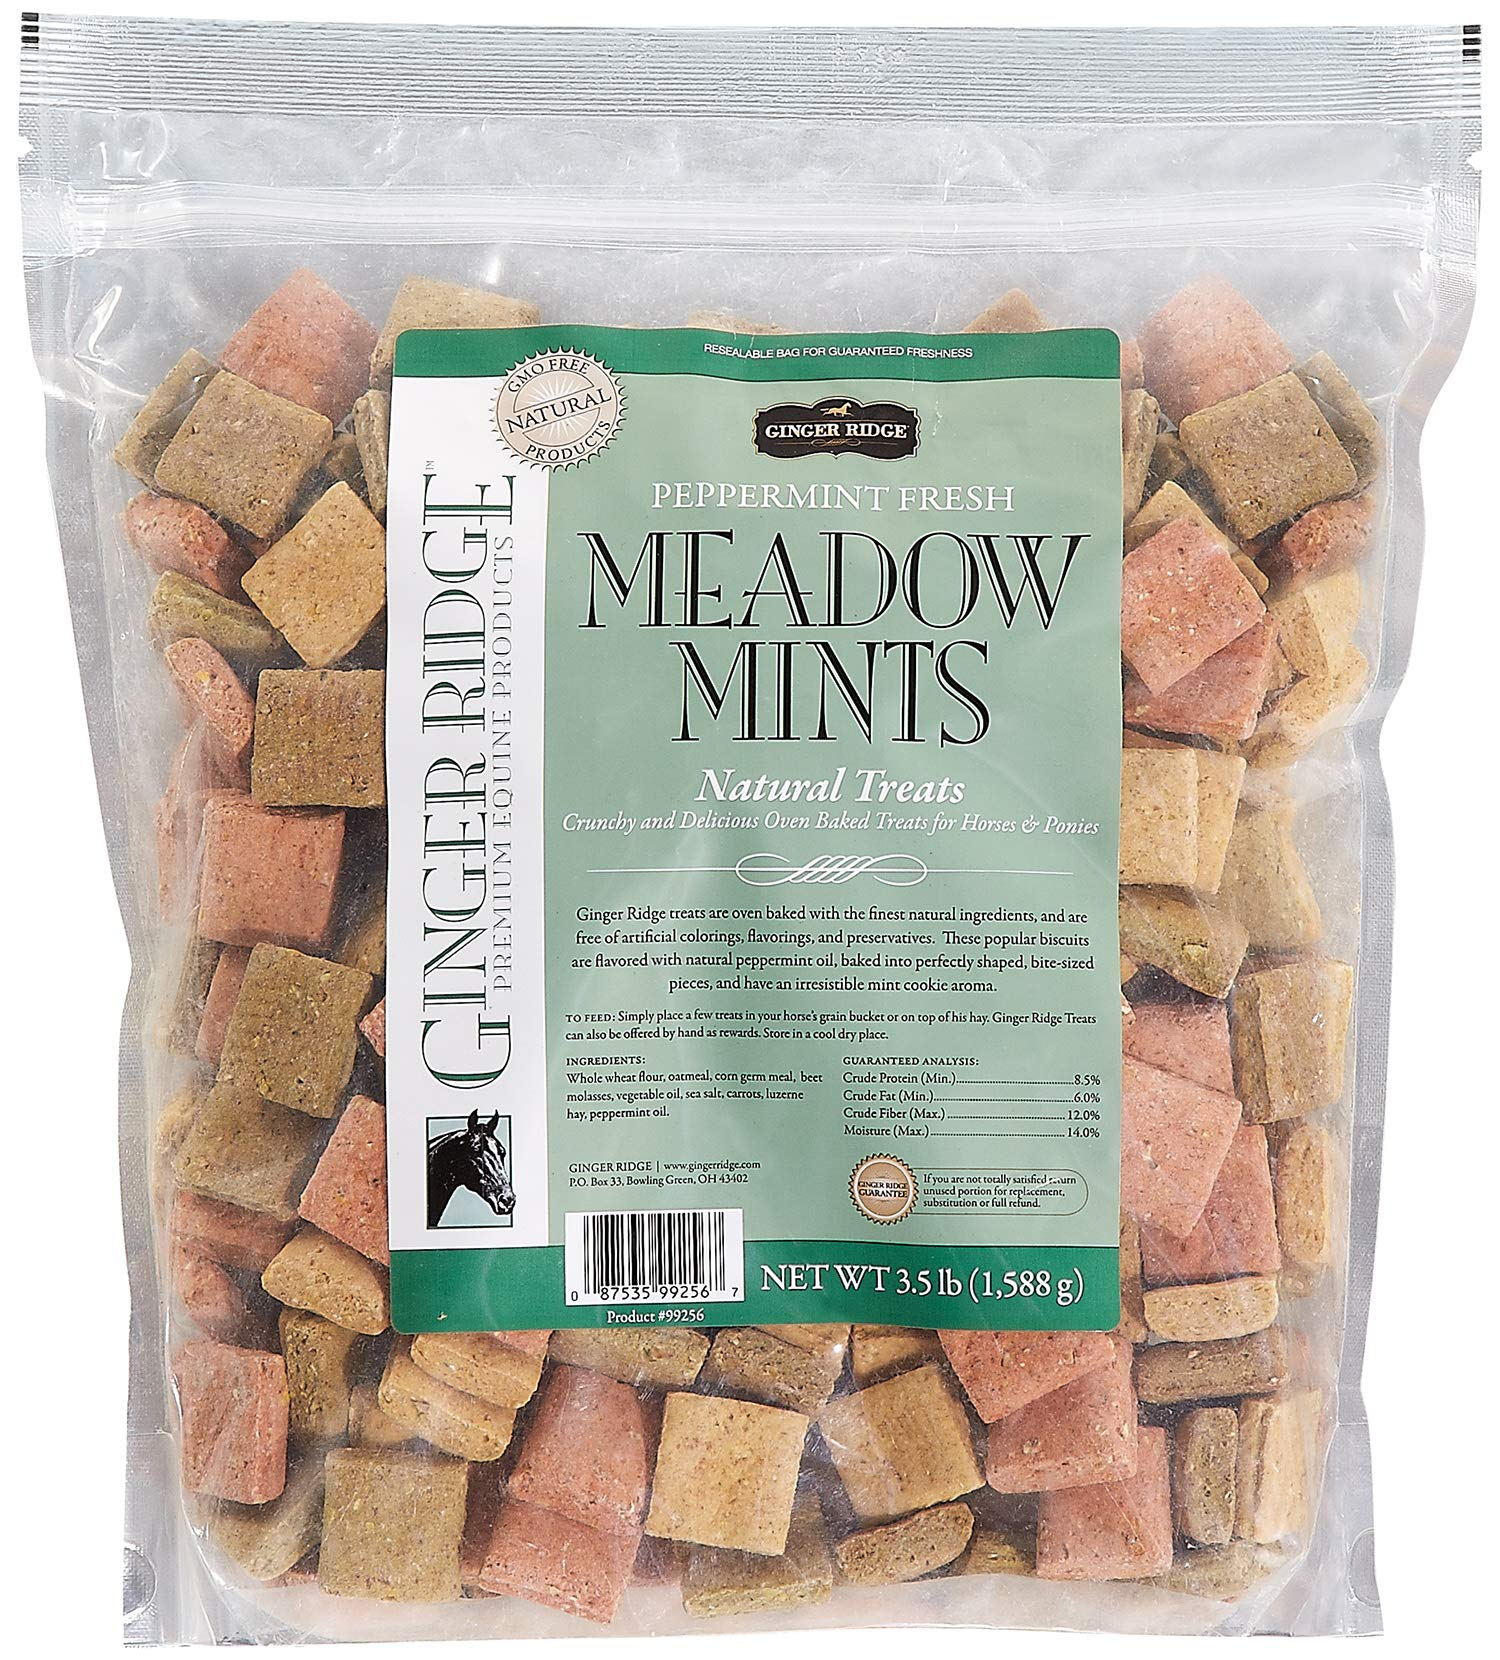 Ginger Ridge Meadow Mints Horse Treats - Peppermint Fresh, 3.5 Lb. Bag